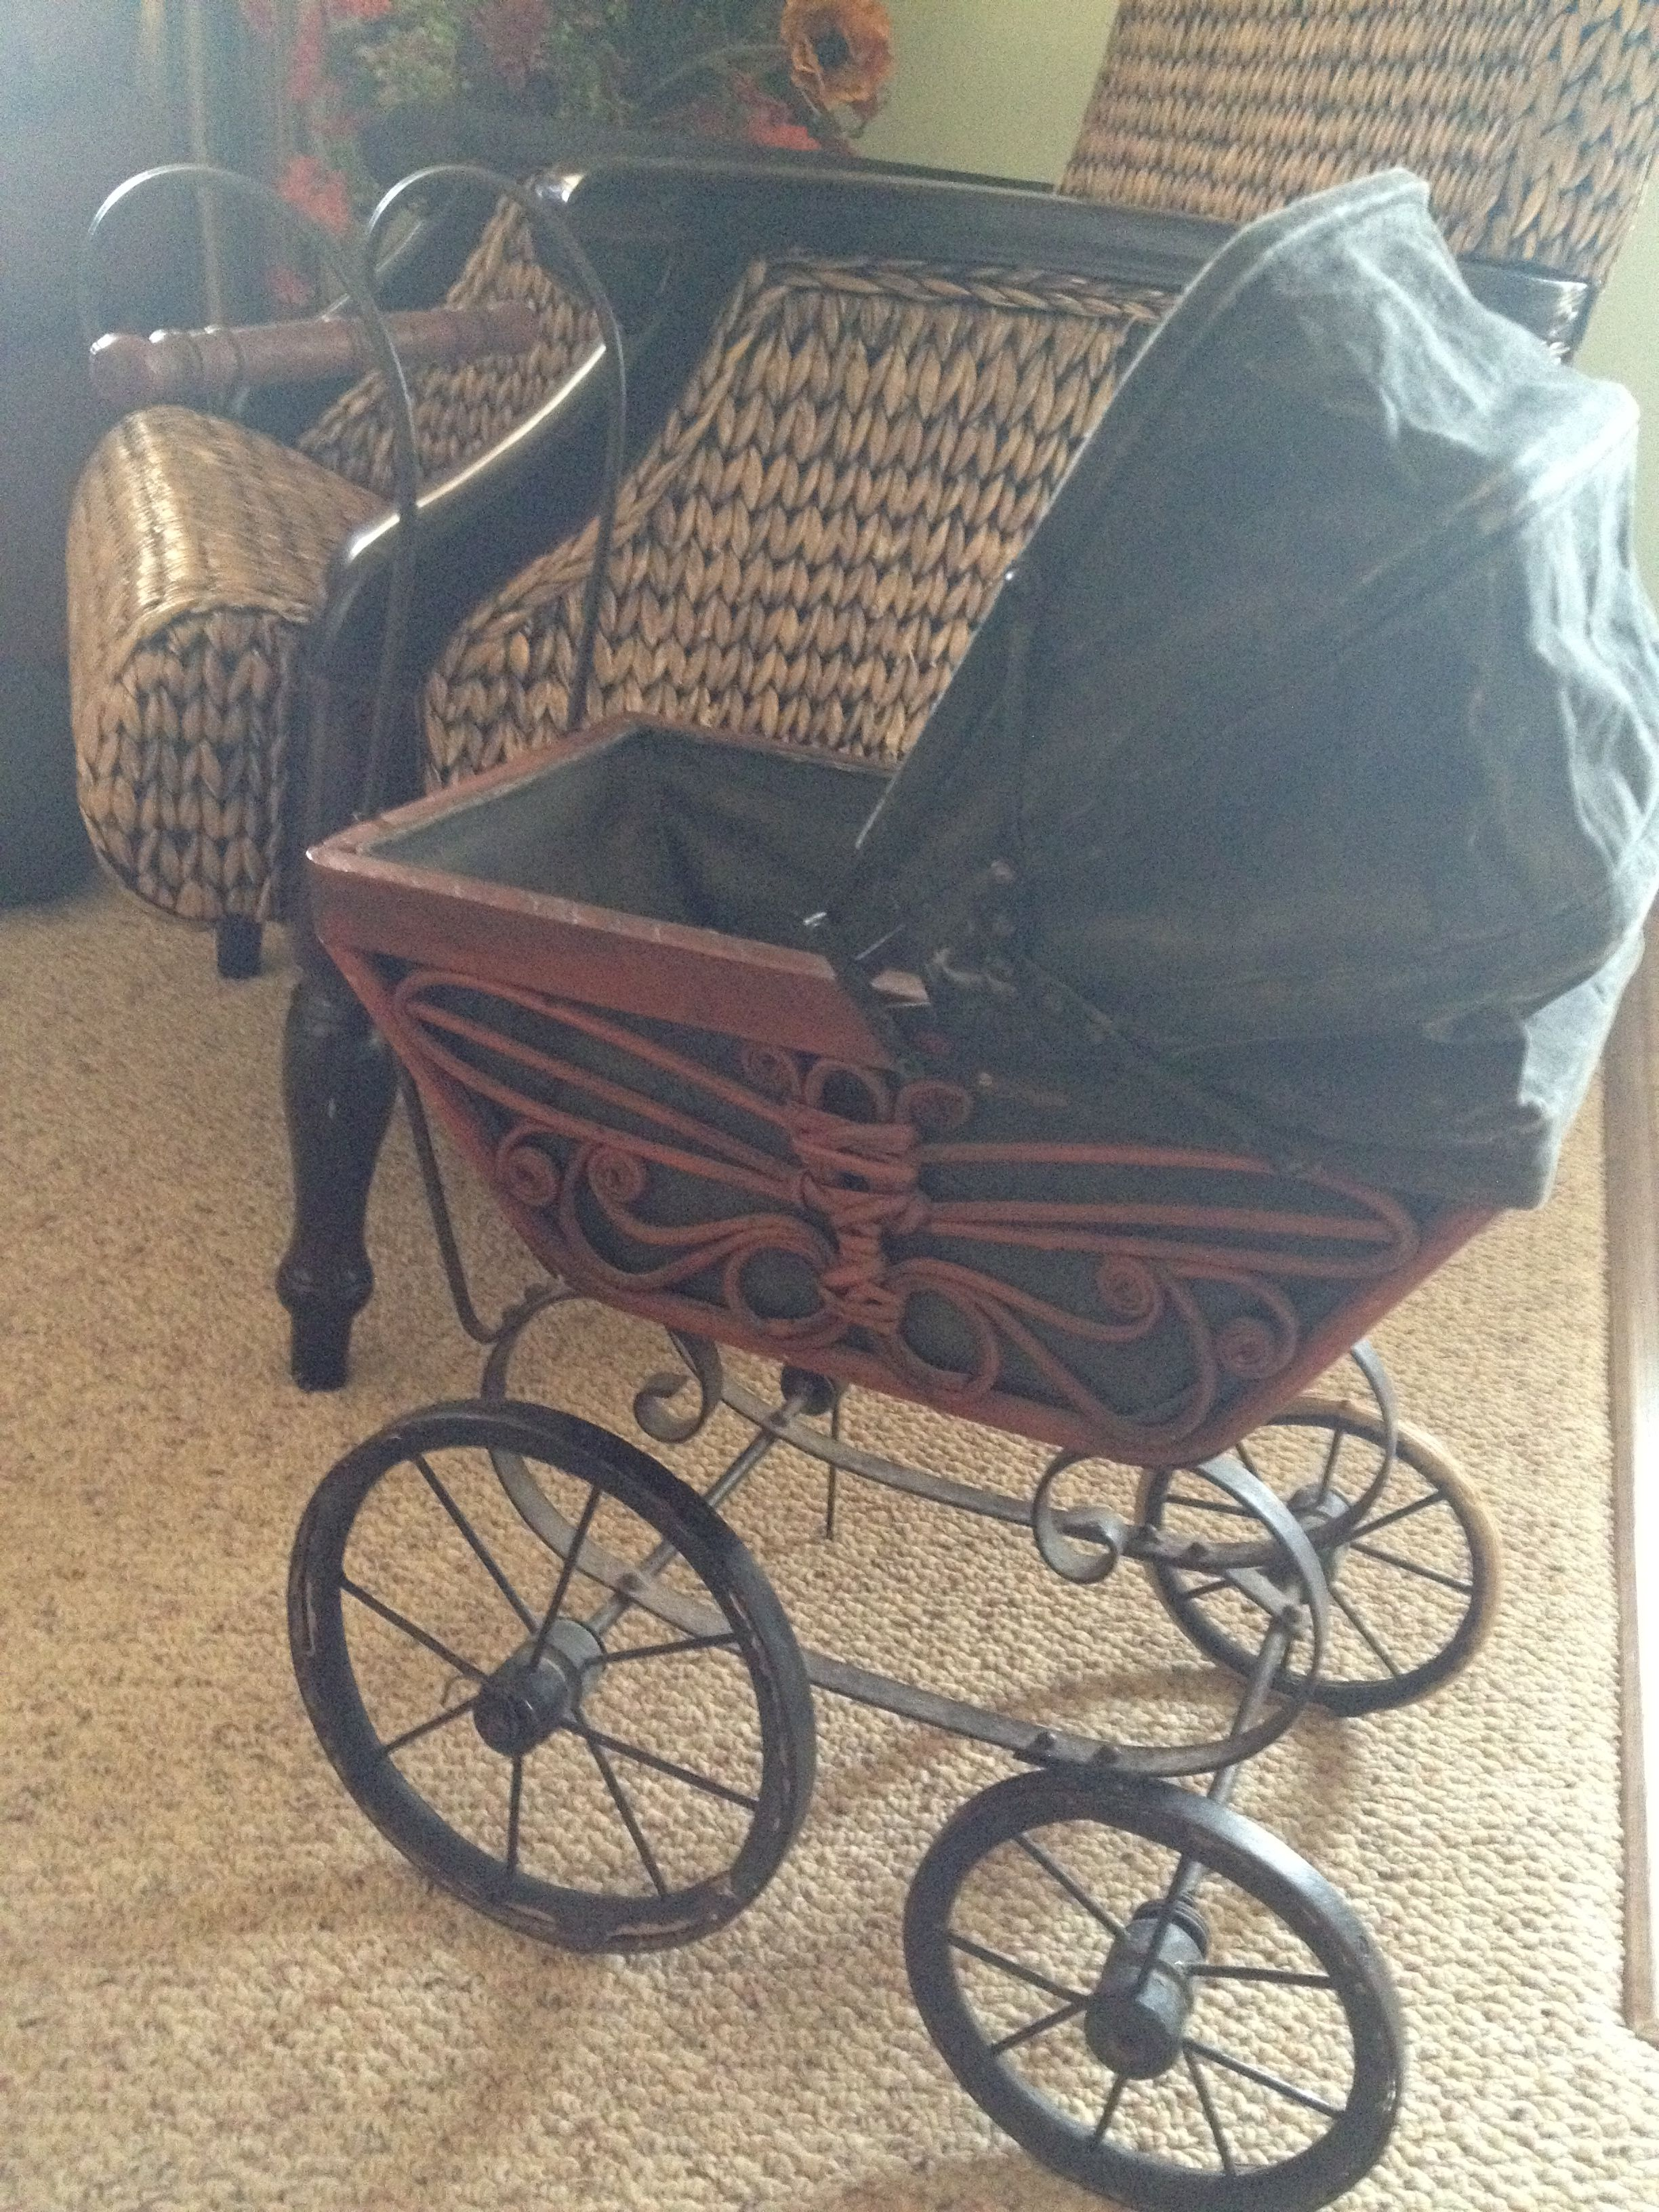 Awesome old stroller from the 1800's found by my husband